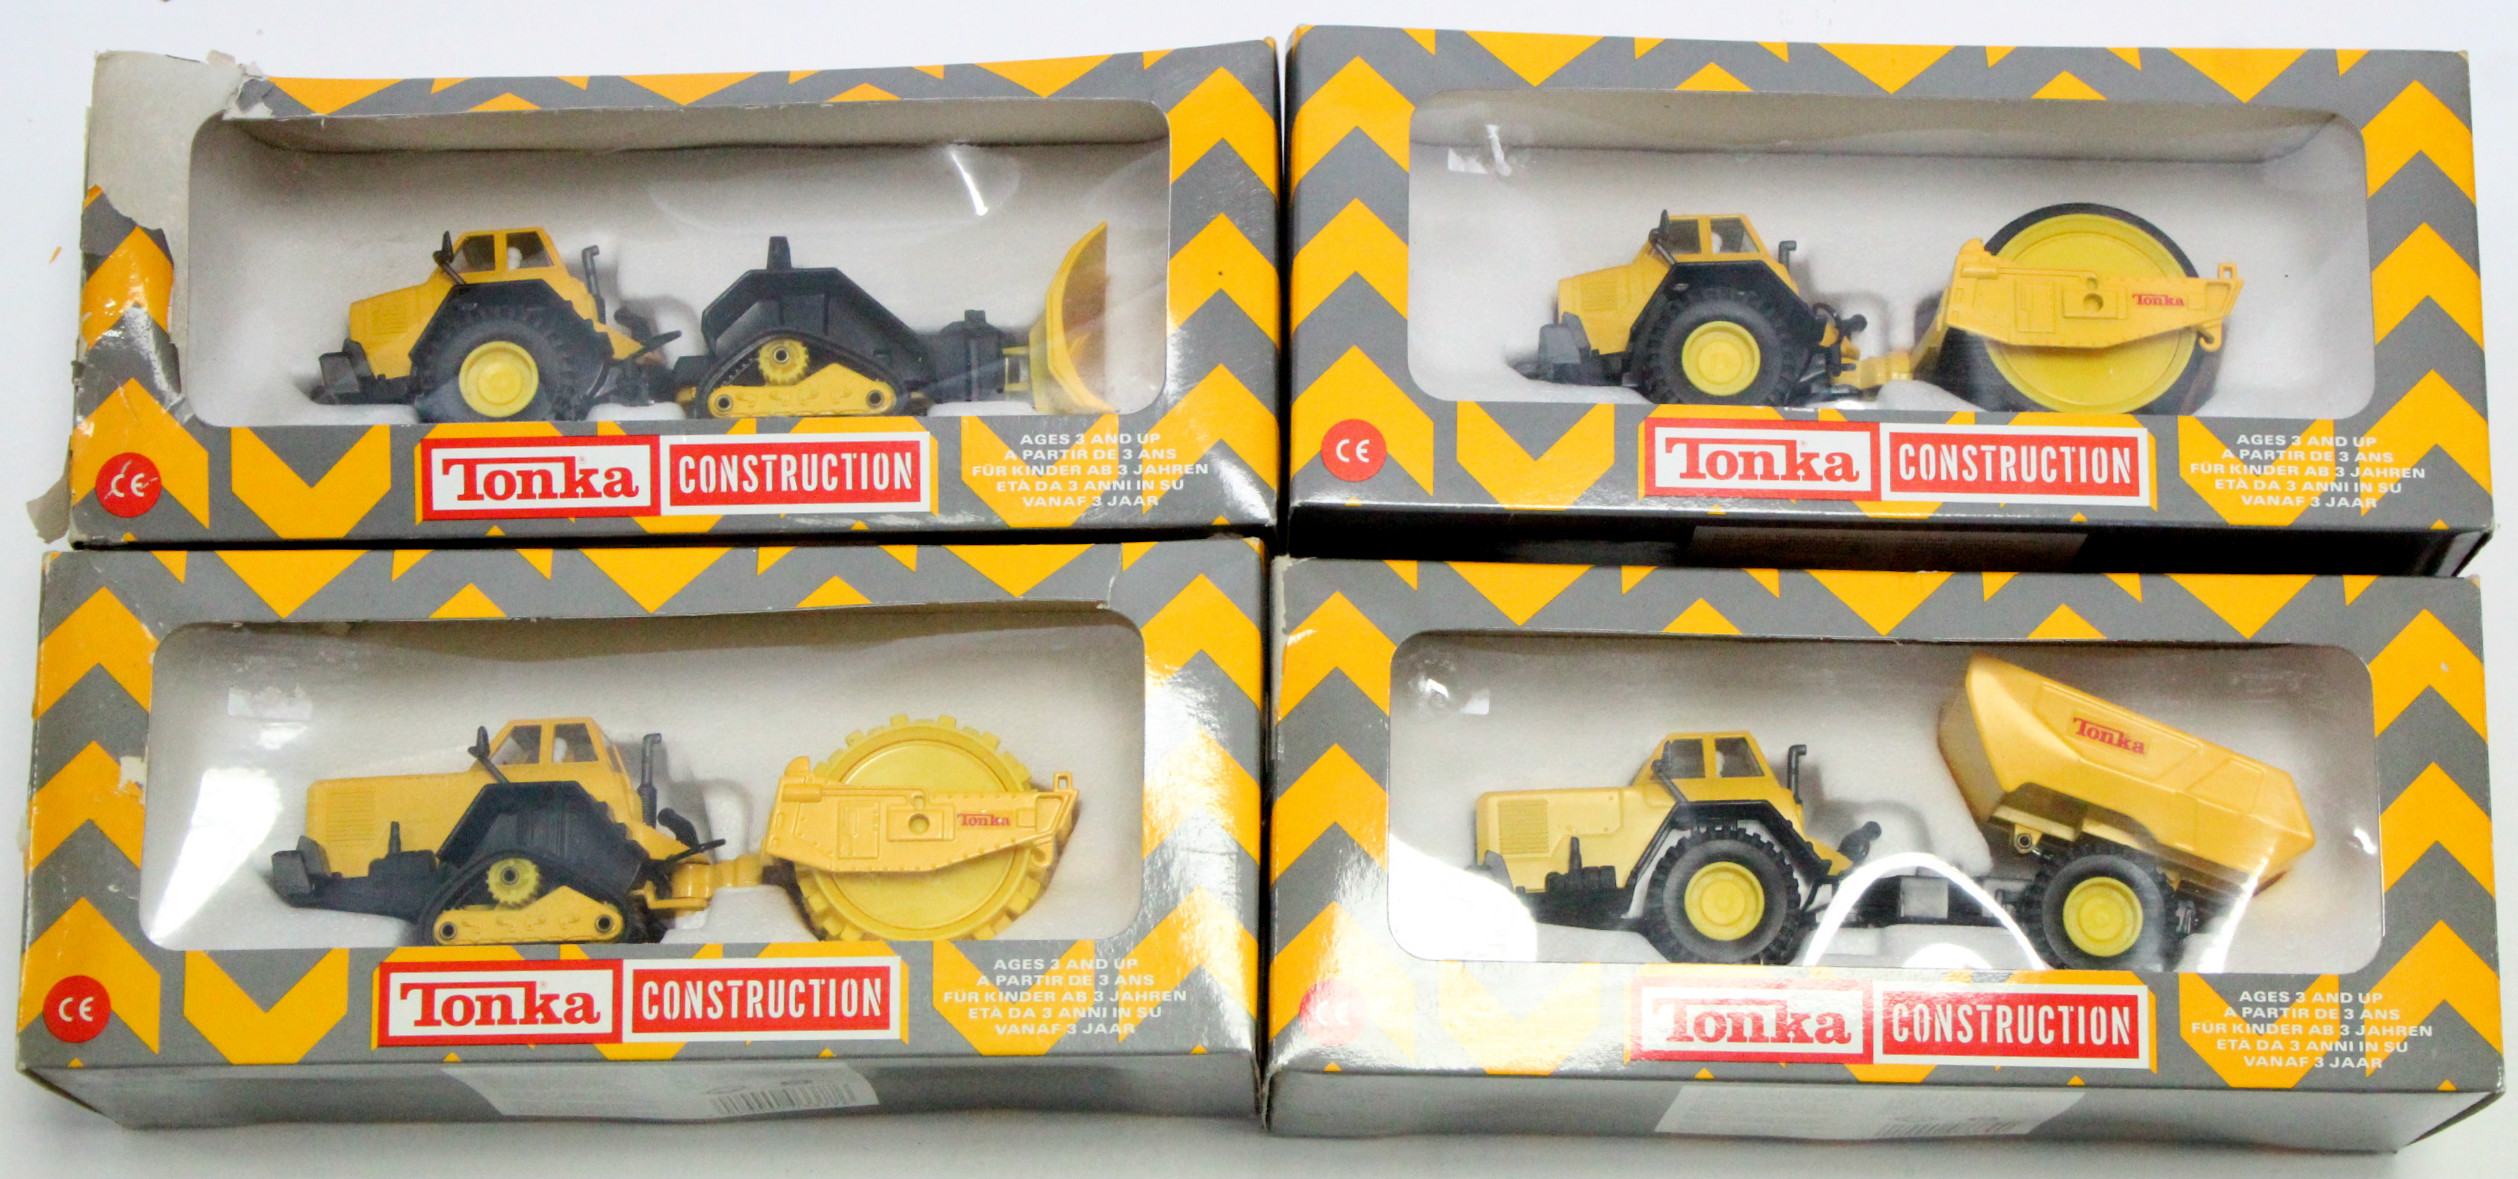 Lot 261 - Four Tonka Toy construction vehicle models, each with window box.